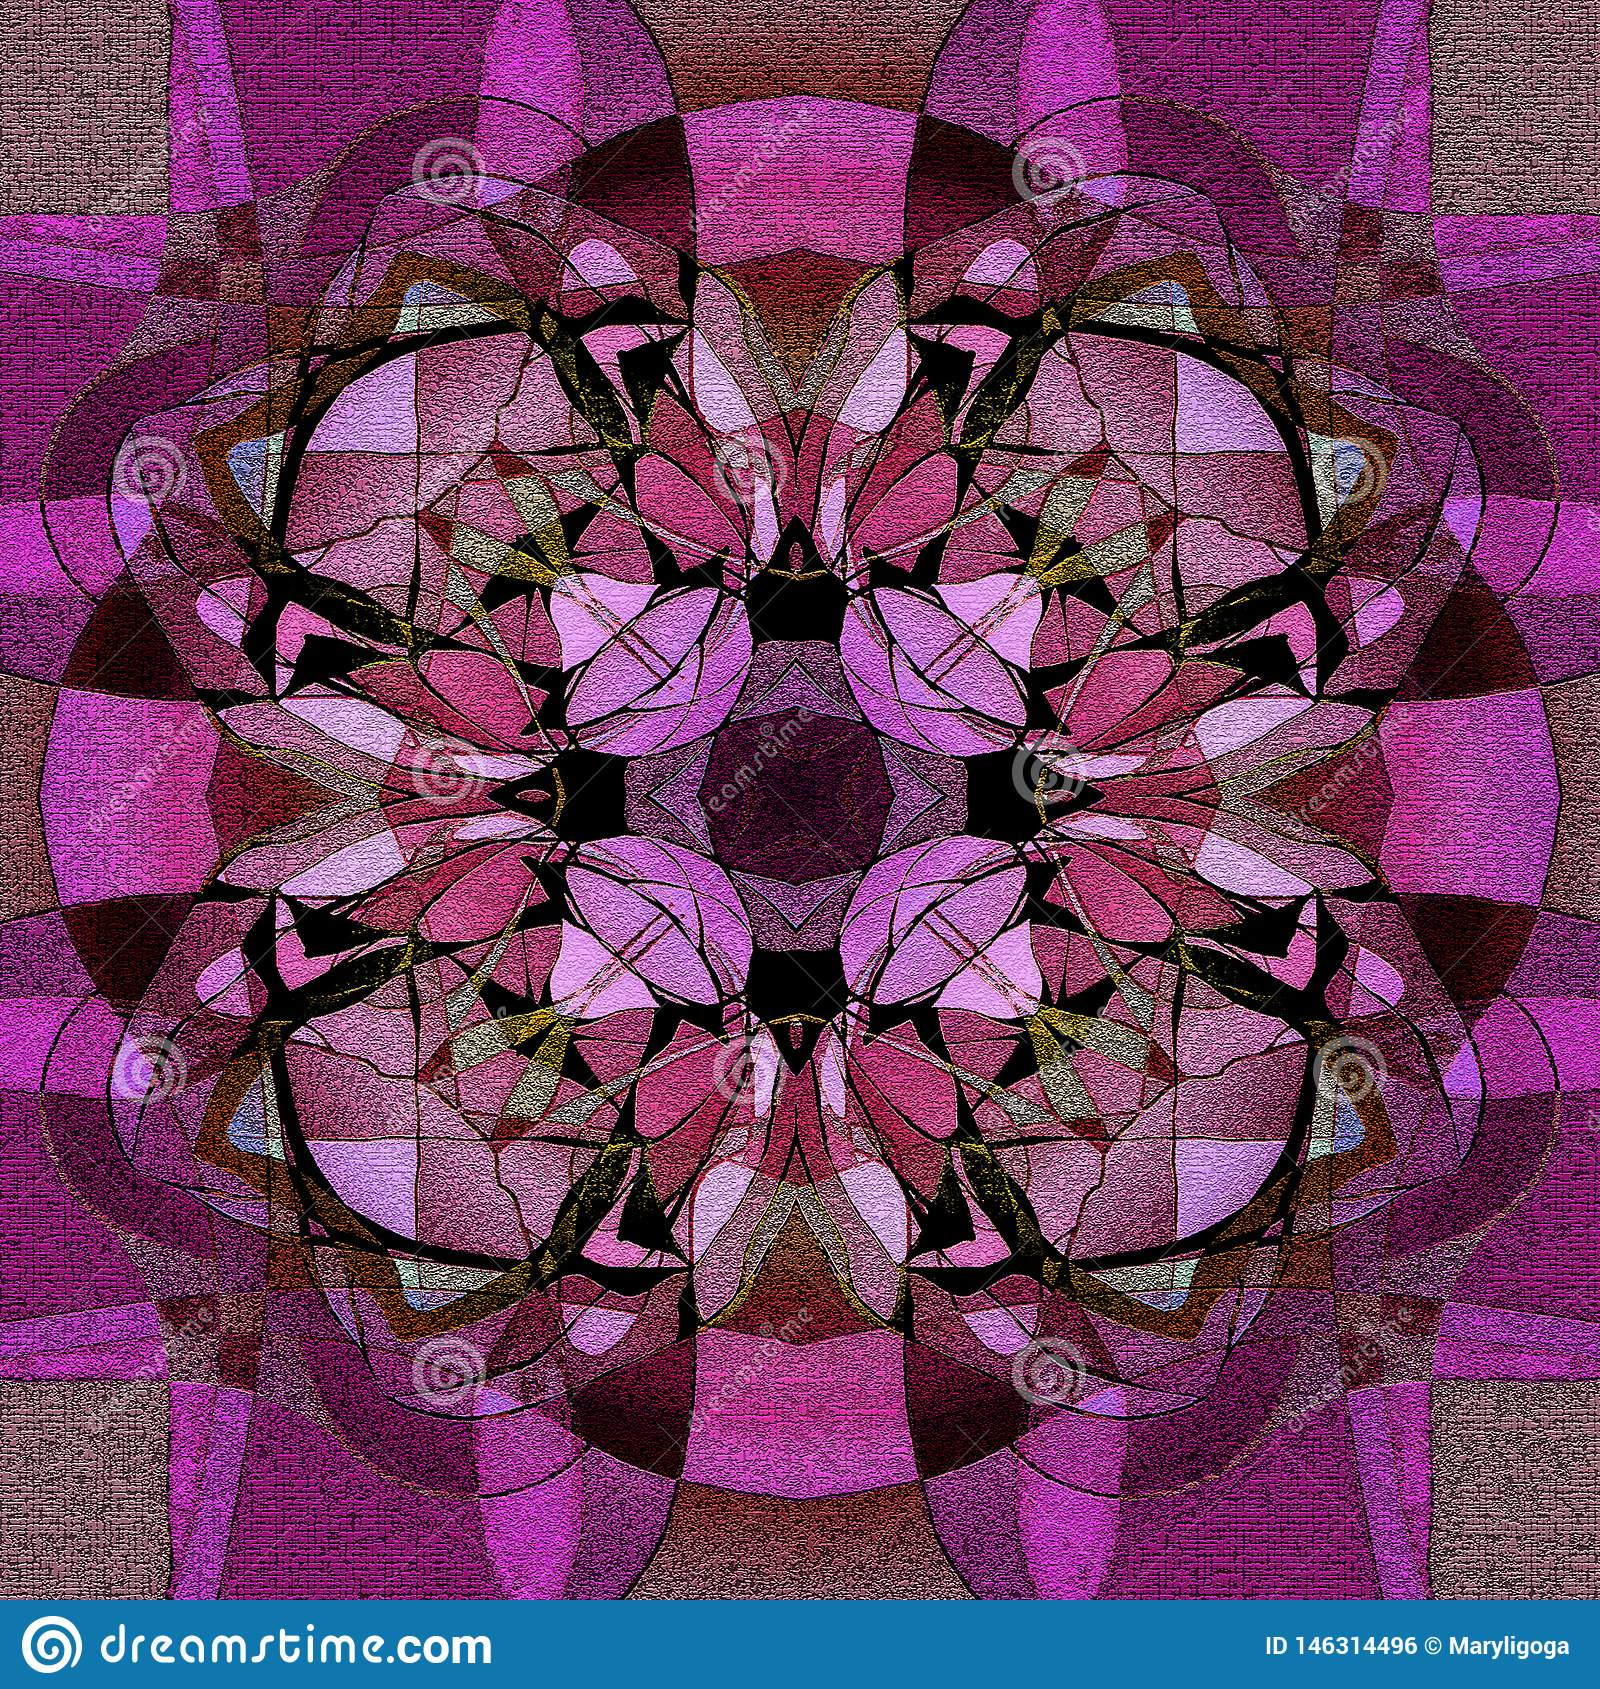 CLOVER MANDALA IN PURPLE GREEN WITH TEXTURE, VINTAGE STYLE, GEOMETRIC AND ROMANTIC, BRIGHT COLORS